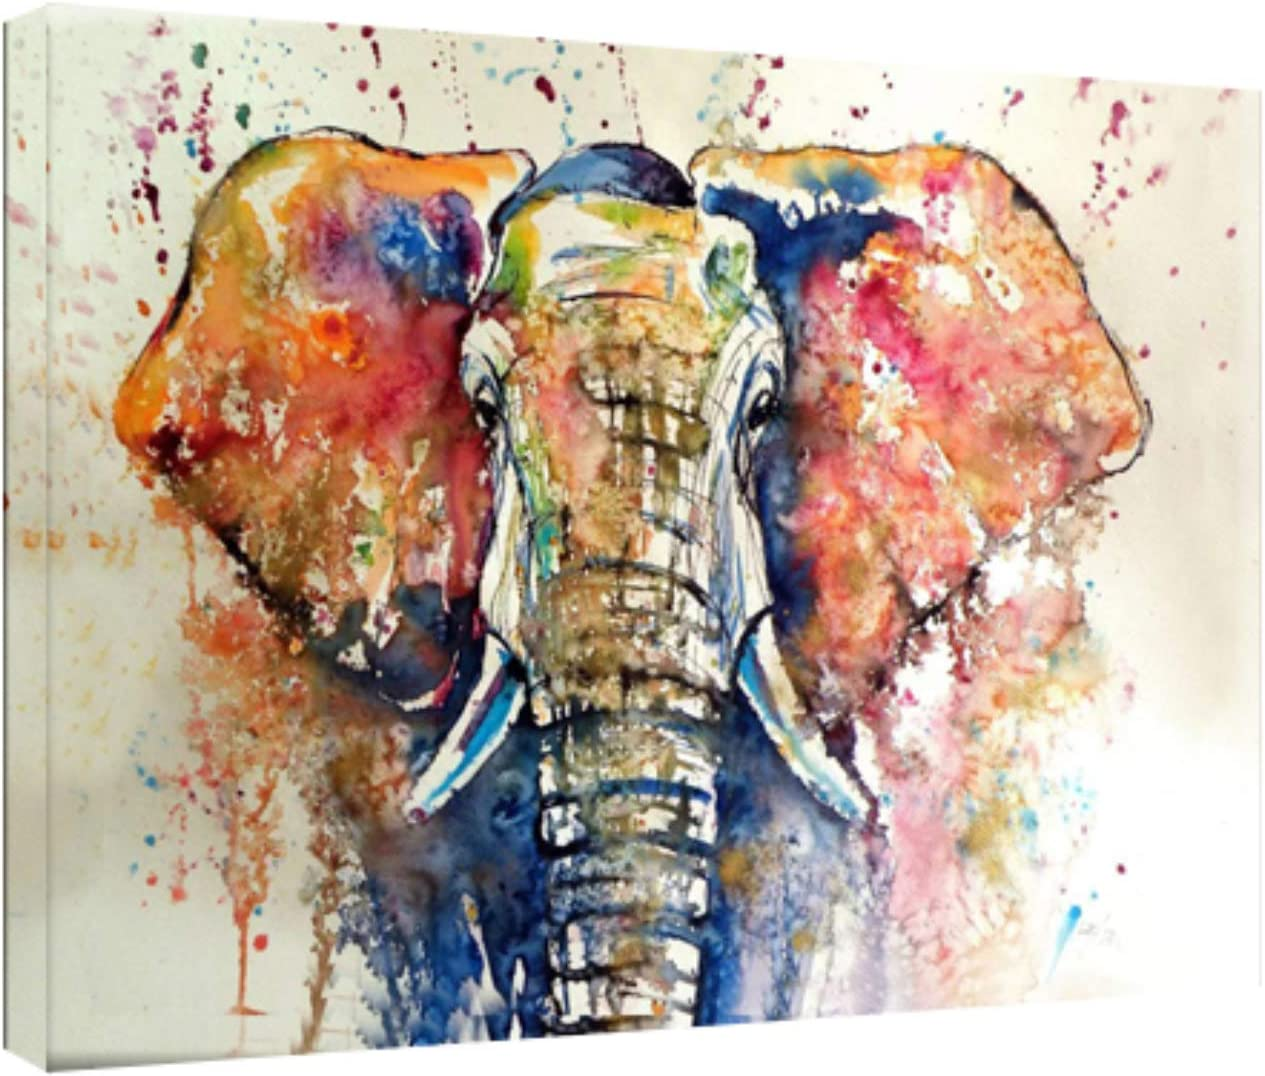 FQJNS Elephant Water Color Wall Art Image Oil Painting Canvas Prints for Home Office Bedroom Decorations Framed Ready to Hang Size 16